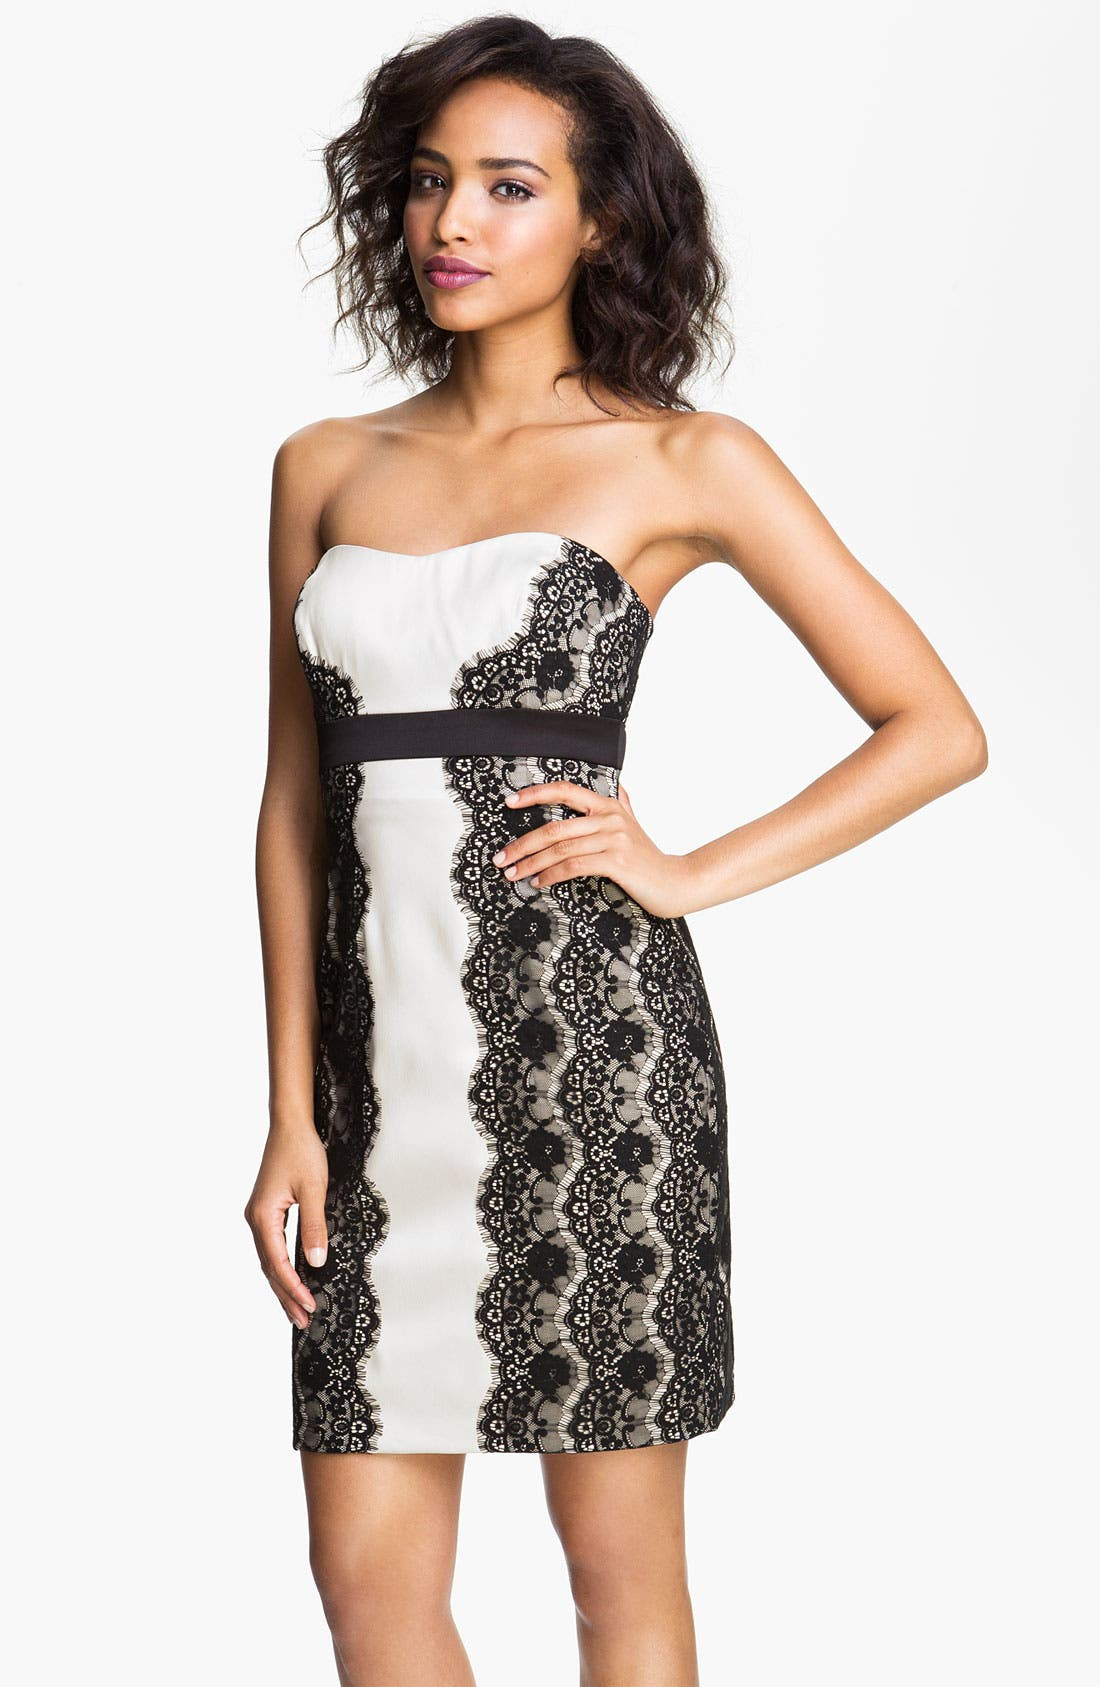 Alternate Image 1 Selected - Max & Cleo 'Olivia' Strapless Satin & Lace Dress